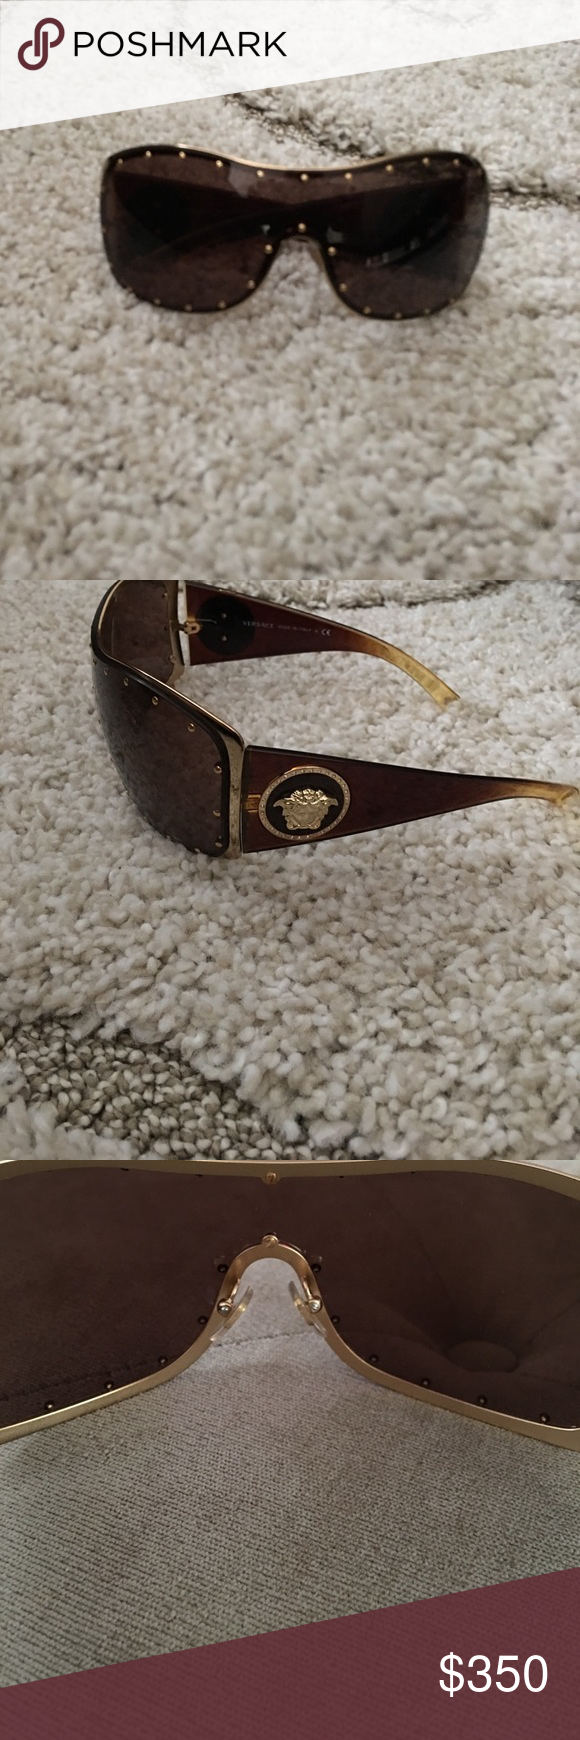 84f127b5a5 Authentic Versace Rock Icon Medusa Studded Shield Sunglasses! Versace  Accessories Sunglasses